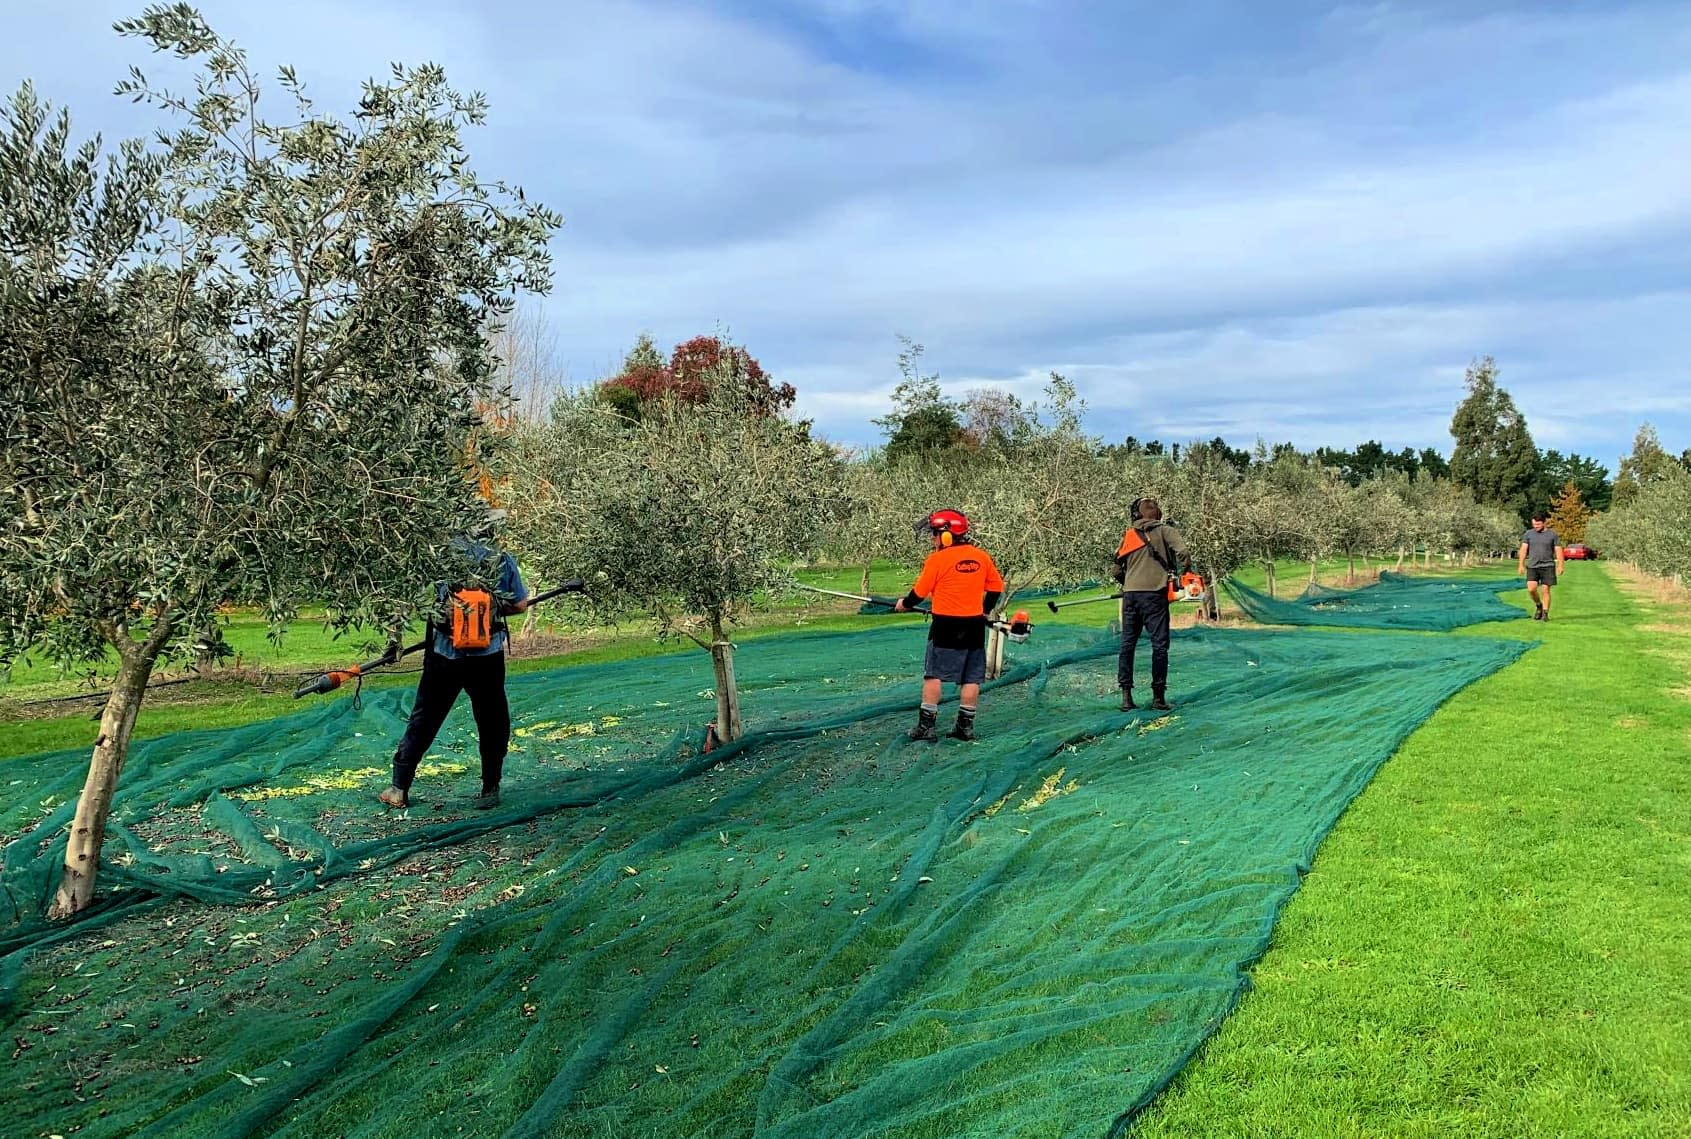 australia-and-new-zealand-competitions-the-best-olive-oils-despite-covid-and-drought-australian-and-new-zealand-producers-shine-at-nyiooc-olive-oil-times